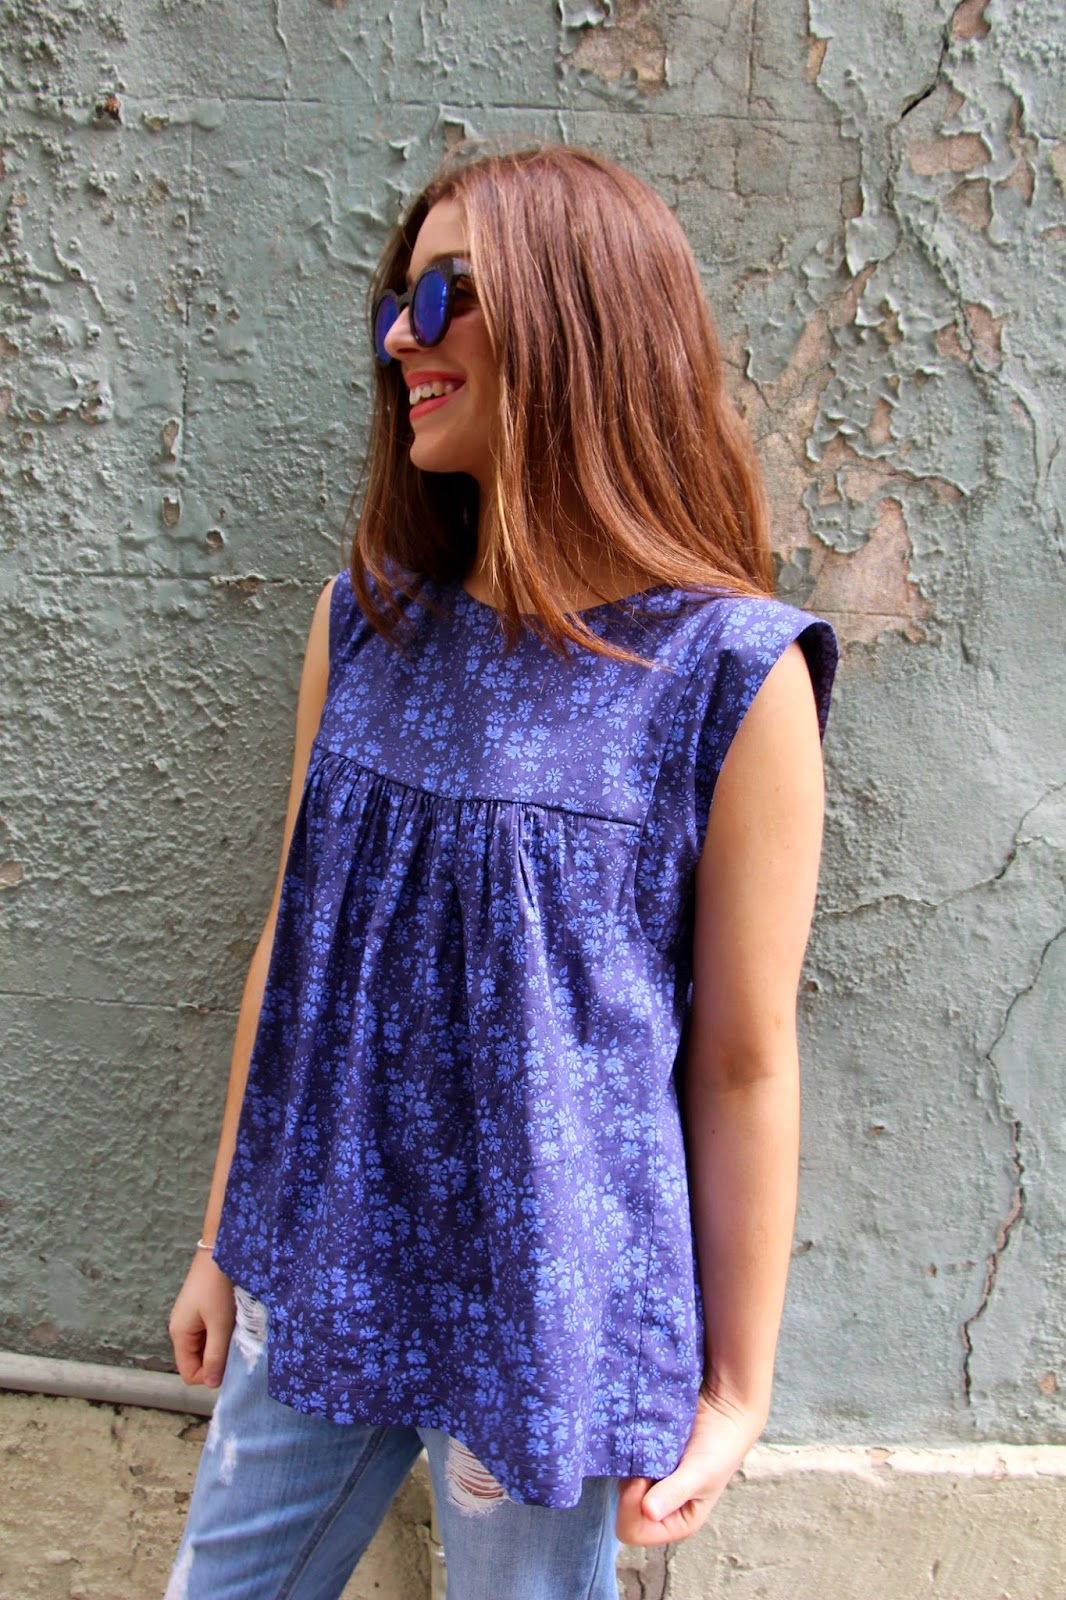 Our Top 10 Quick Breakfast Recipes: Our Latest Pattern - The Alice Dress/Top